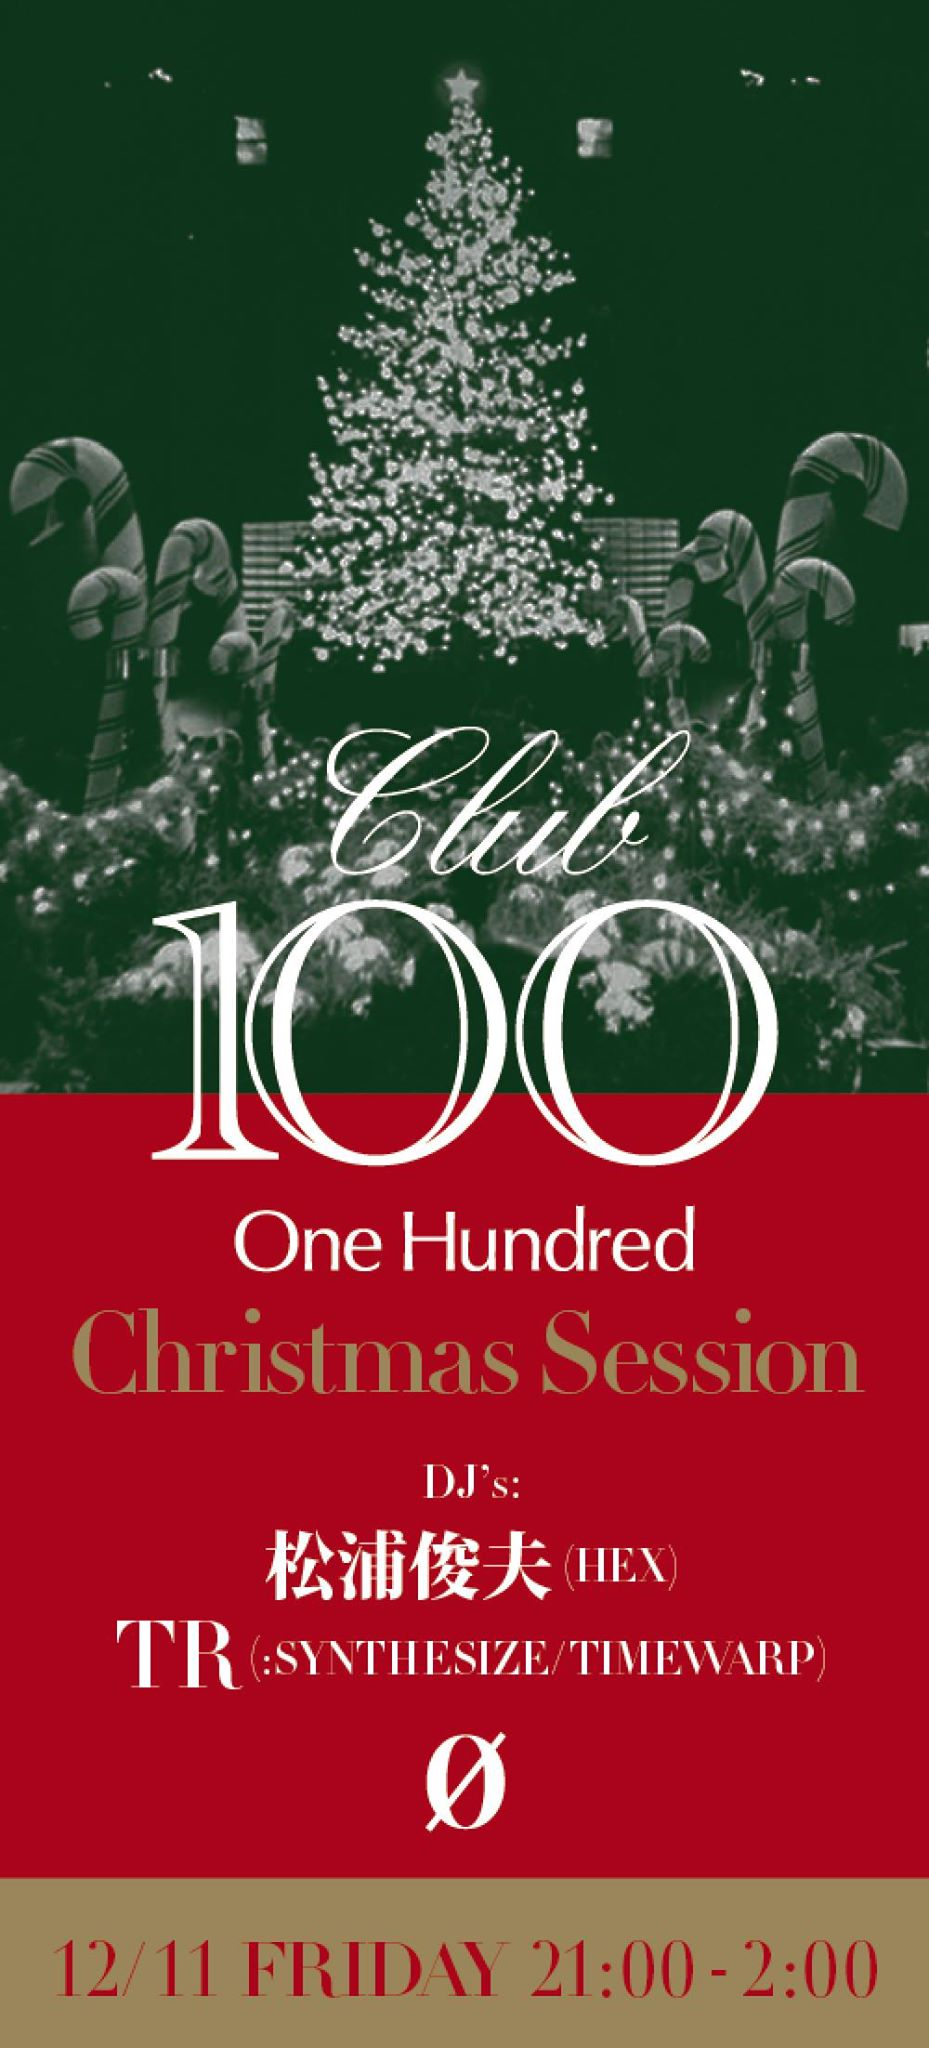 CLUB 100 (One Hundred) -Christmas Session-